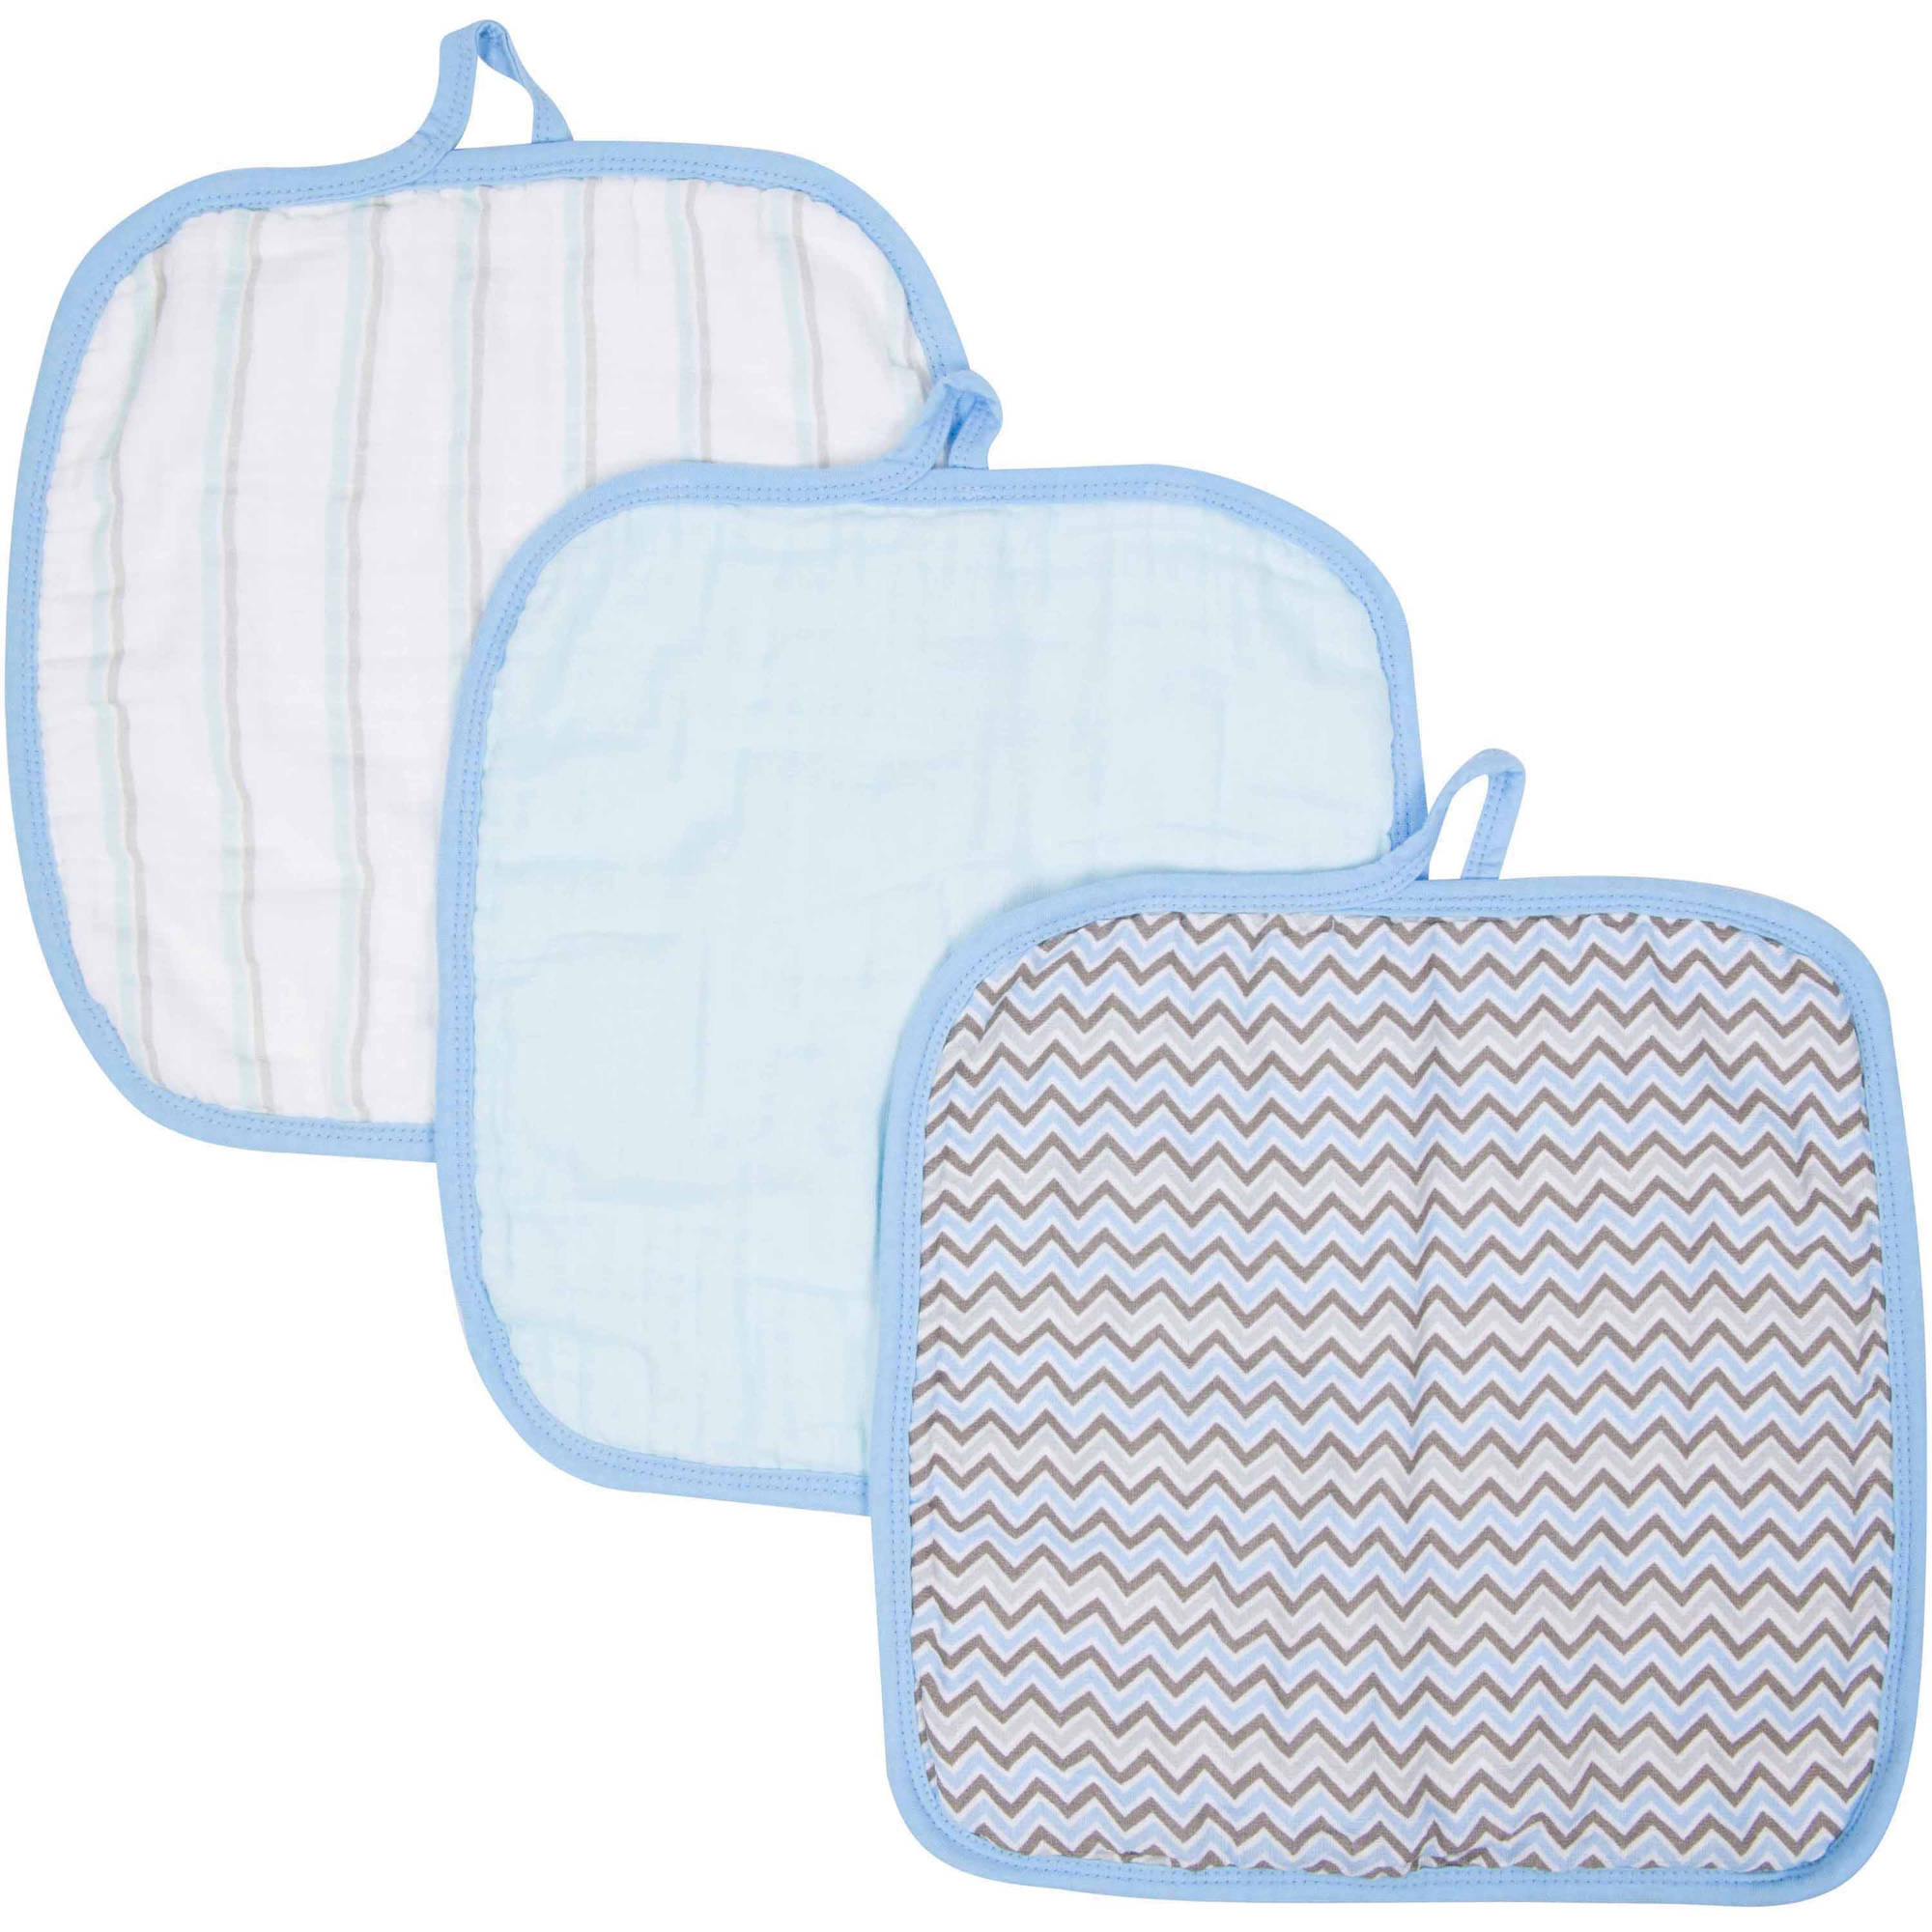 MiracleWare Muslin Cotton Baby Washcloths, 3pk